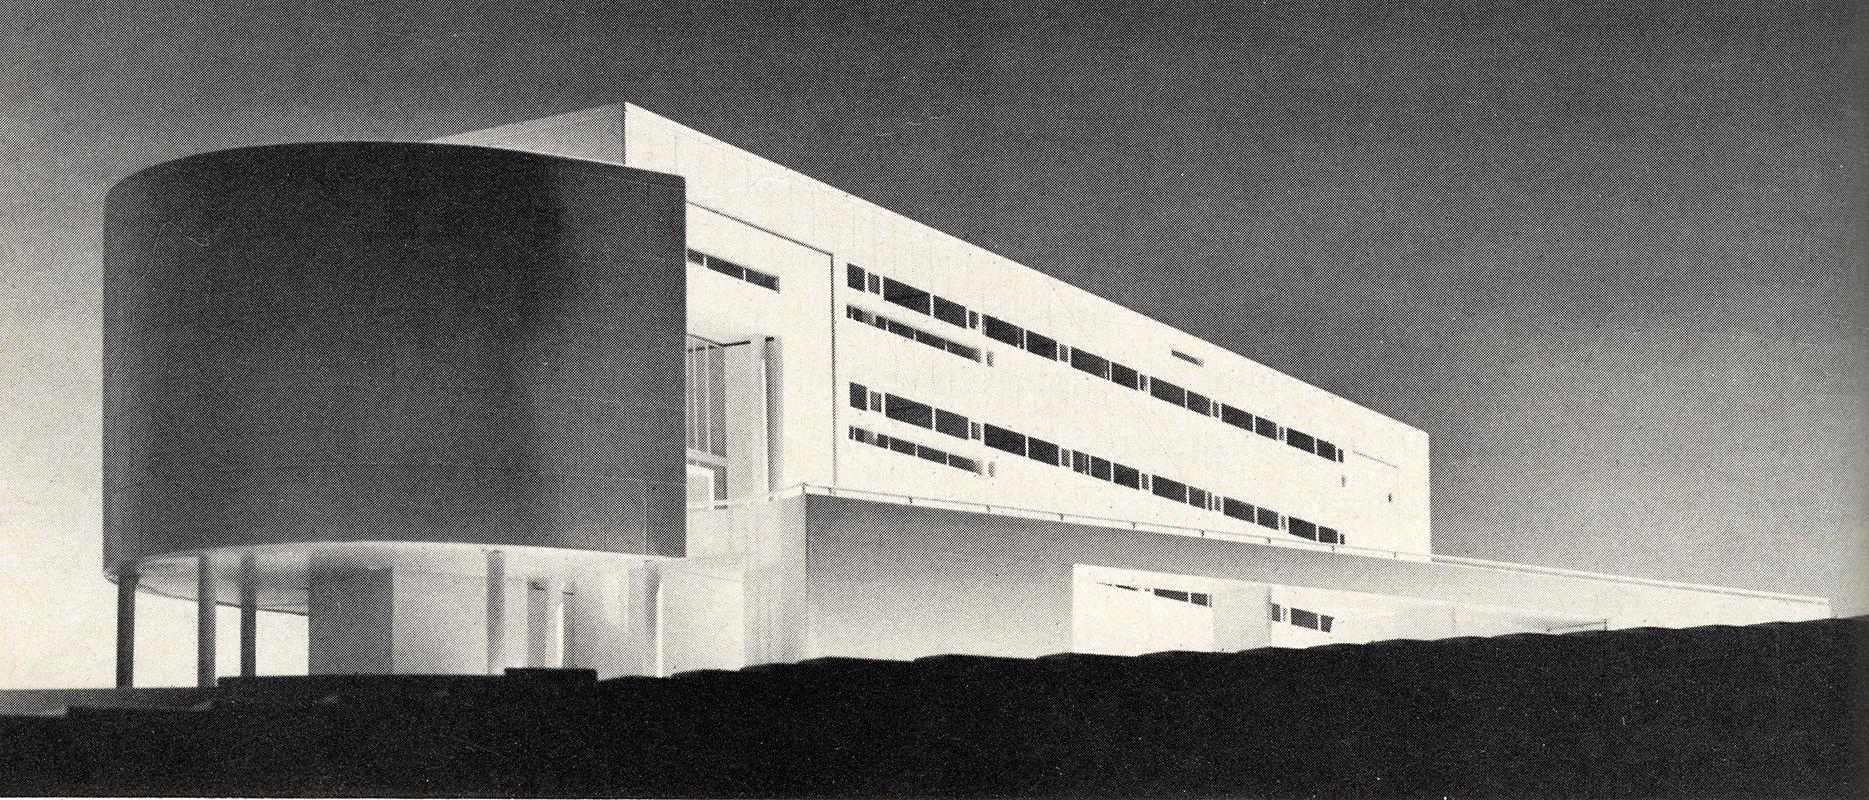 Richard Meier. Architectural Record. Feb 1974, 118